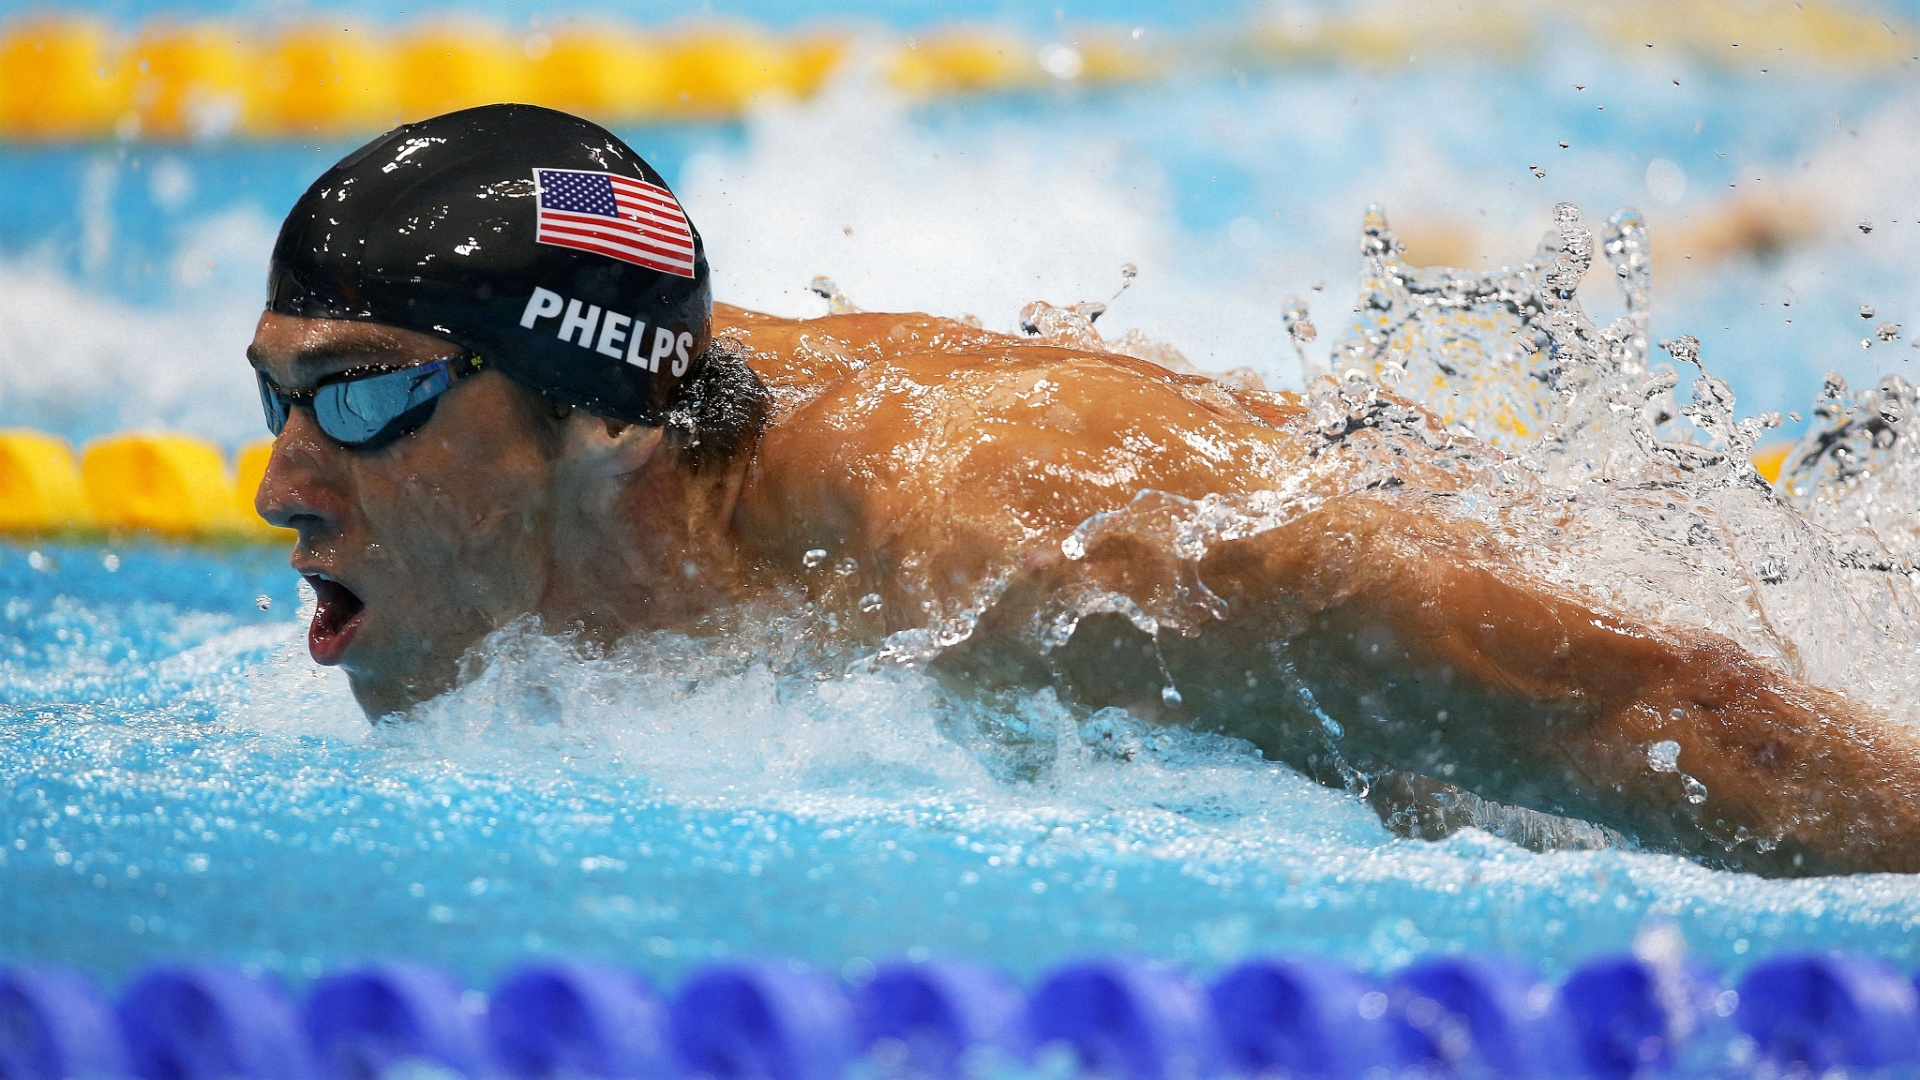 Norte-americano Michael Phelps nada para vencer a segunda semifinal dos 200 m borboleta (30/07/2012)